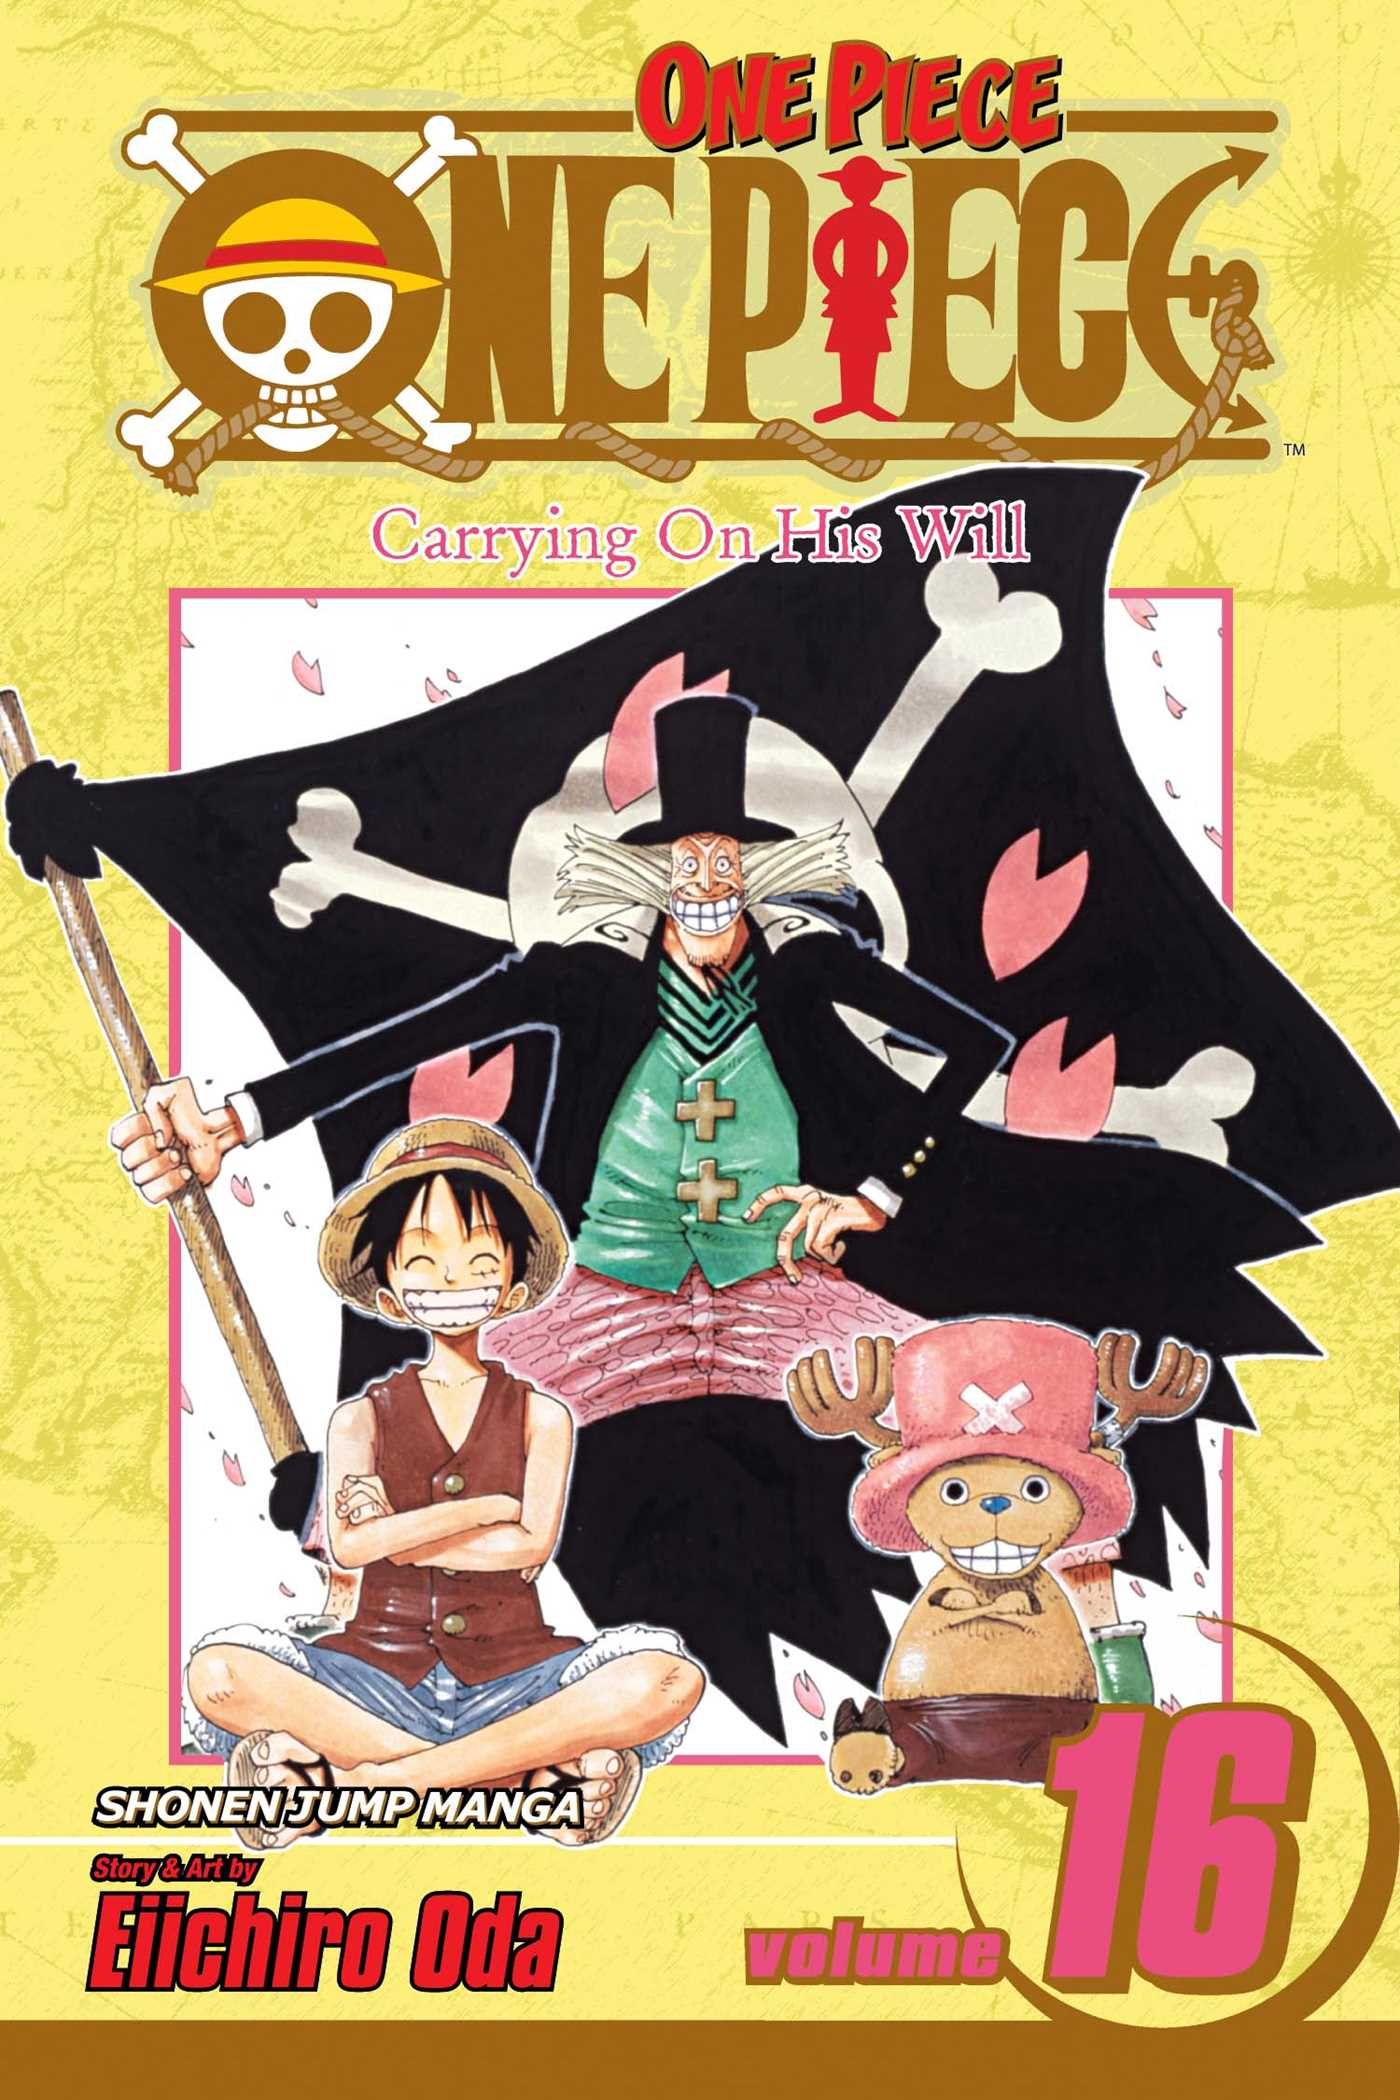 One-piece-vol-16-9781421510934_hr